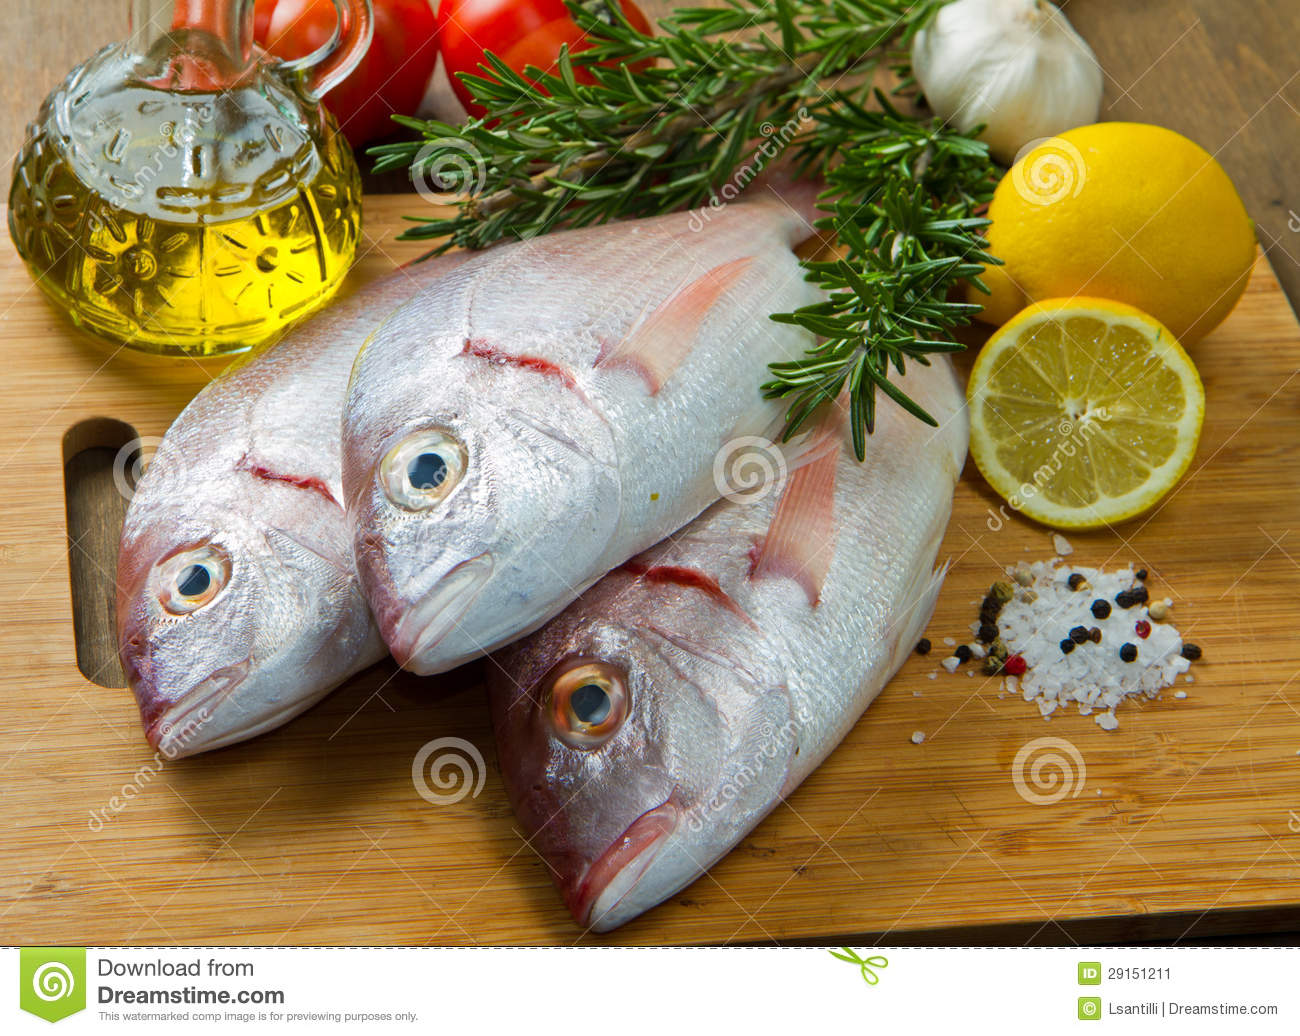 Sea Bream Stock Image - Image: 29151211